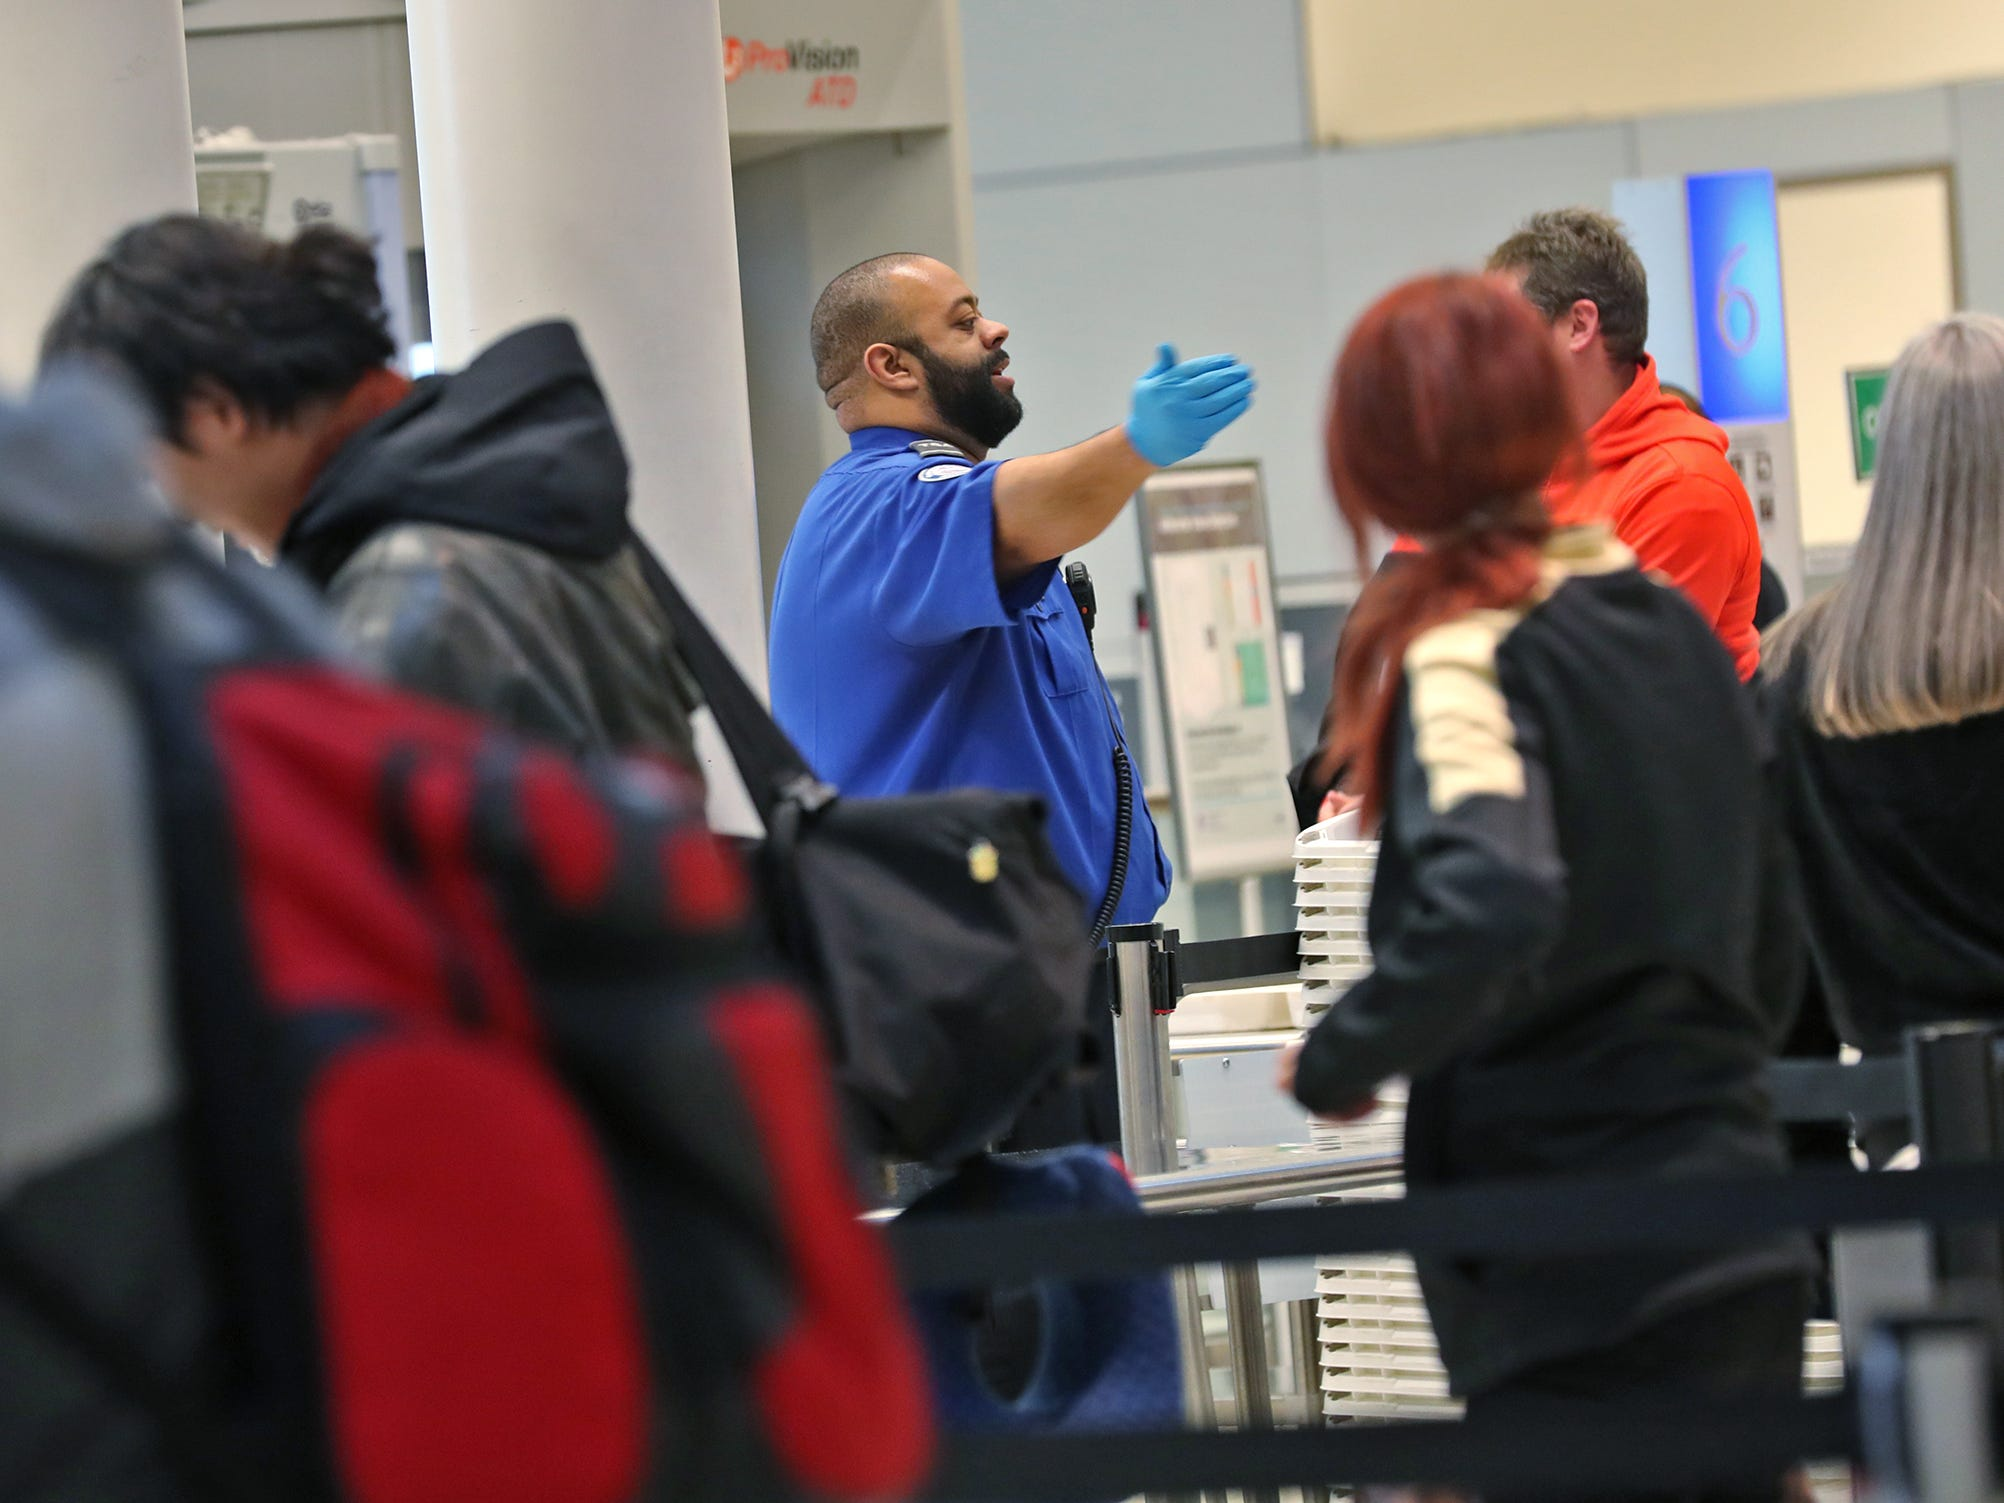 A TSA agent instruct travelers going through security at the Indianapolis International Airport, Tuesday, Jan. 15, 2019.